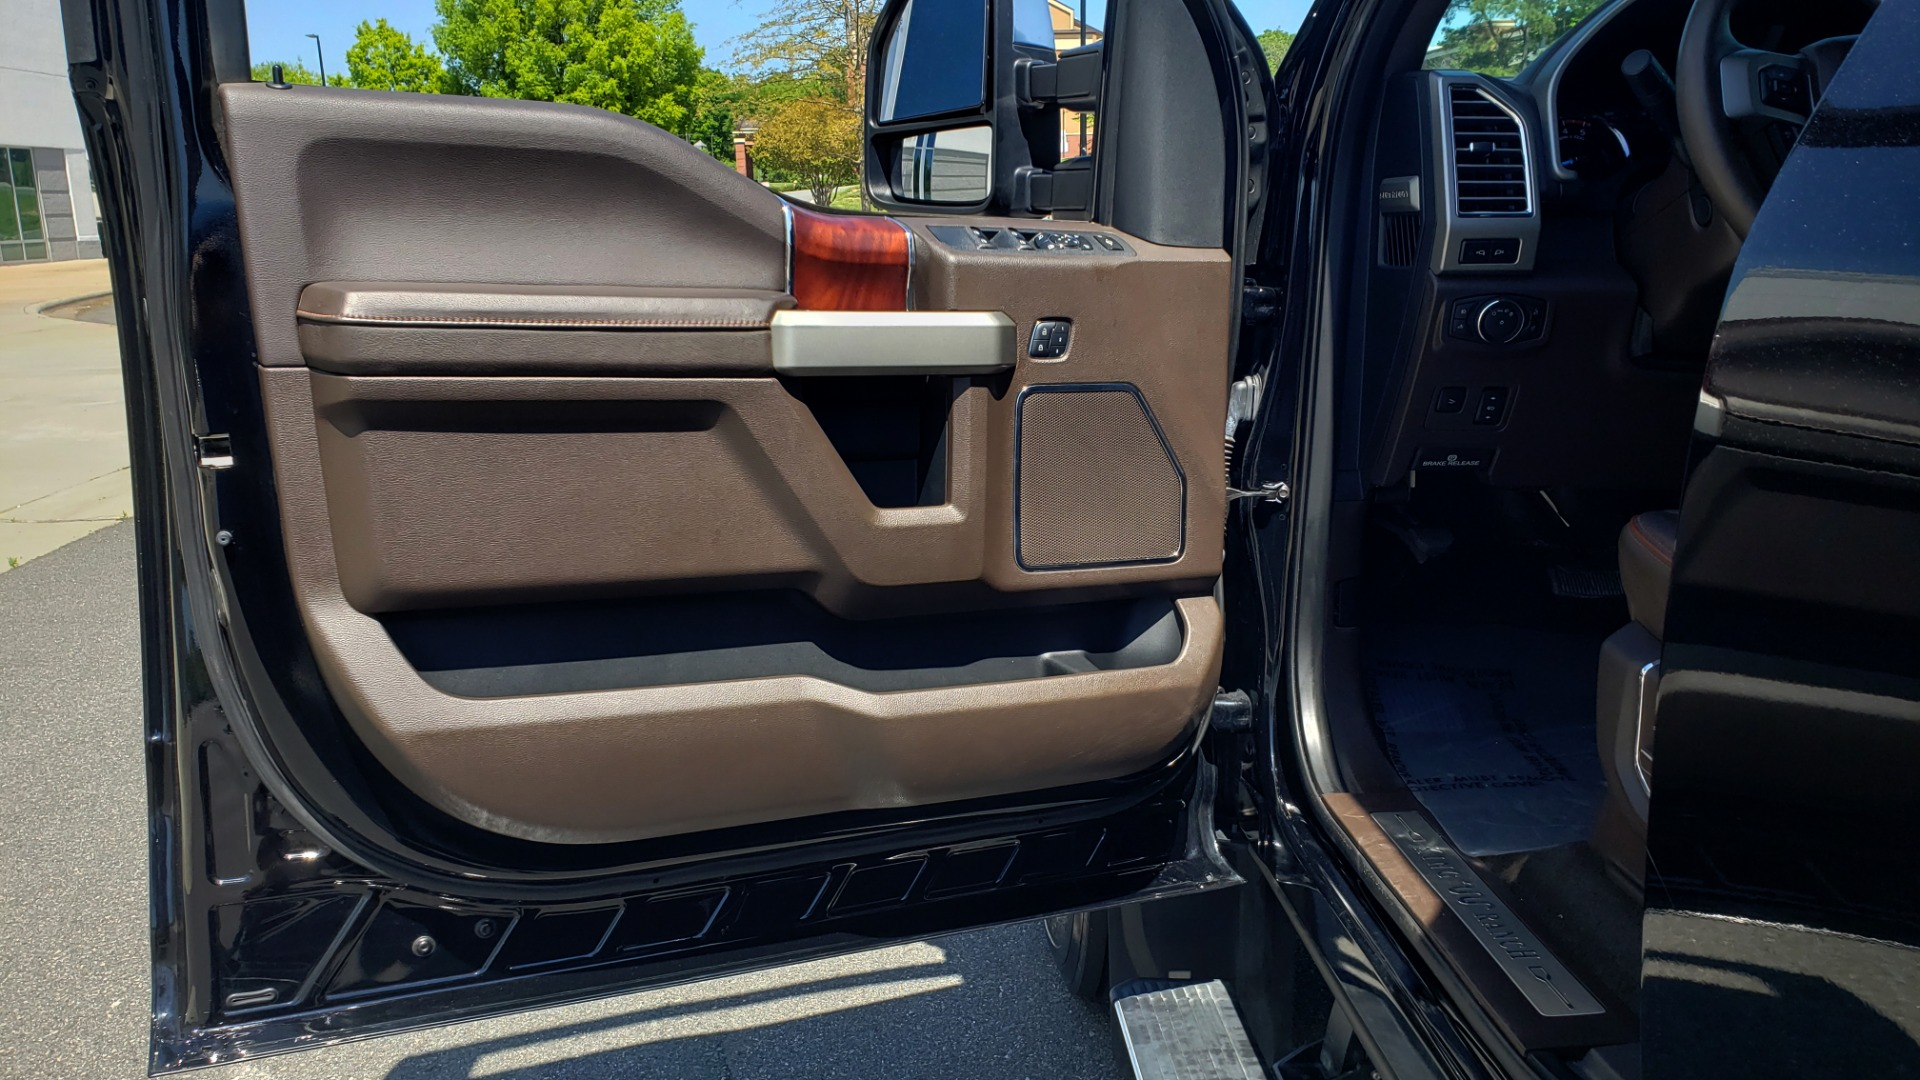 Used 2017 Ford SUPER DUTY F-450 DRW KING RANCH 4X4 / 176IN WB / 6.7L POWER-STROKE / LOADED for sale Sold at Formula Imports in Charlotte NC 28227 35